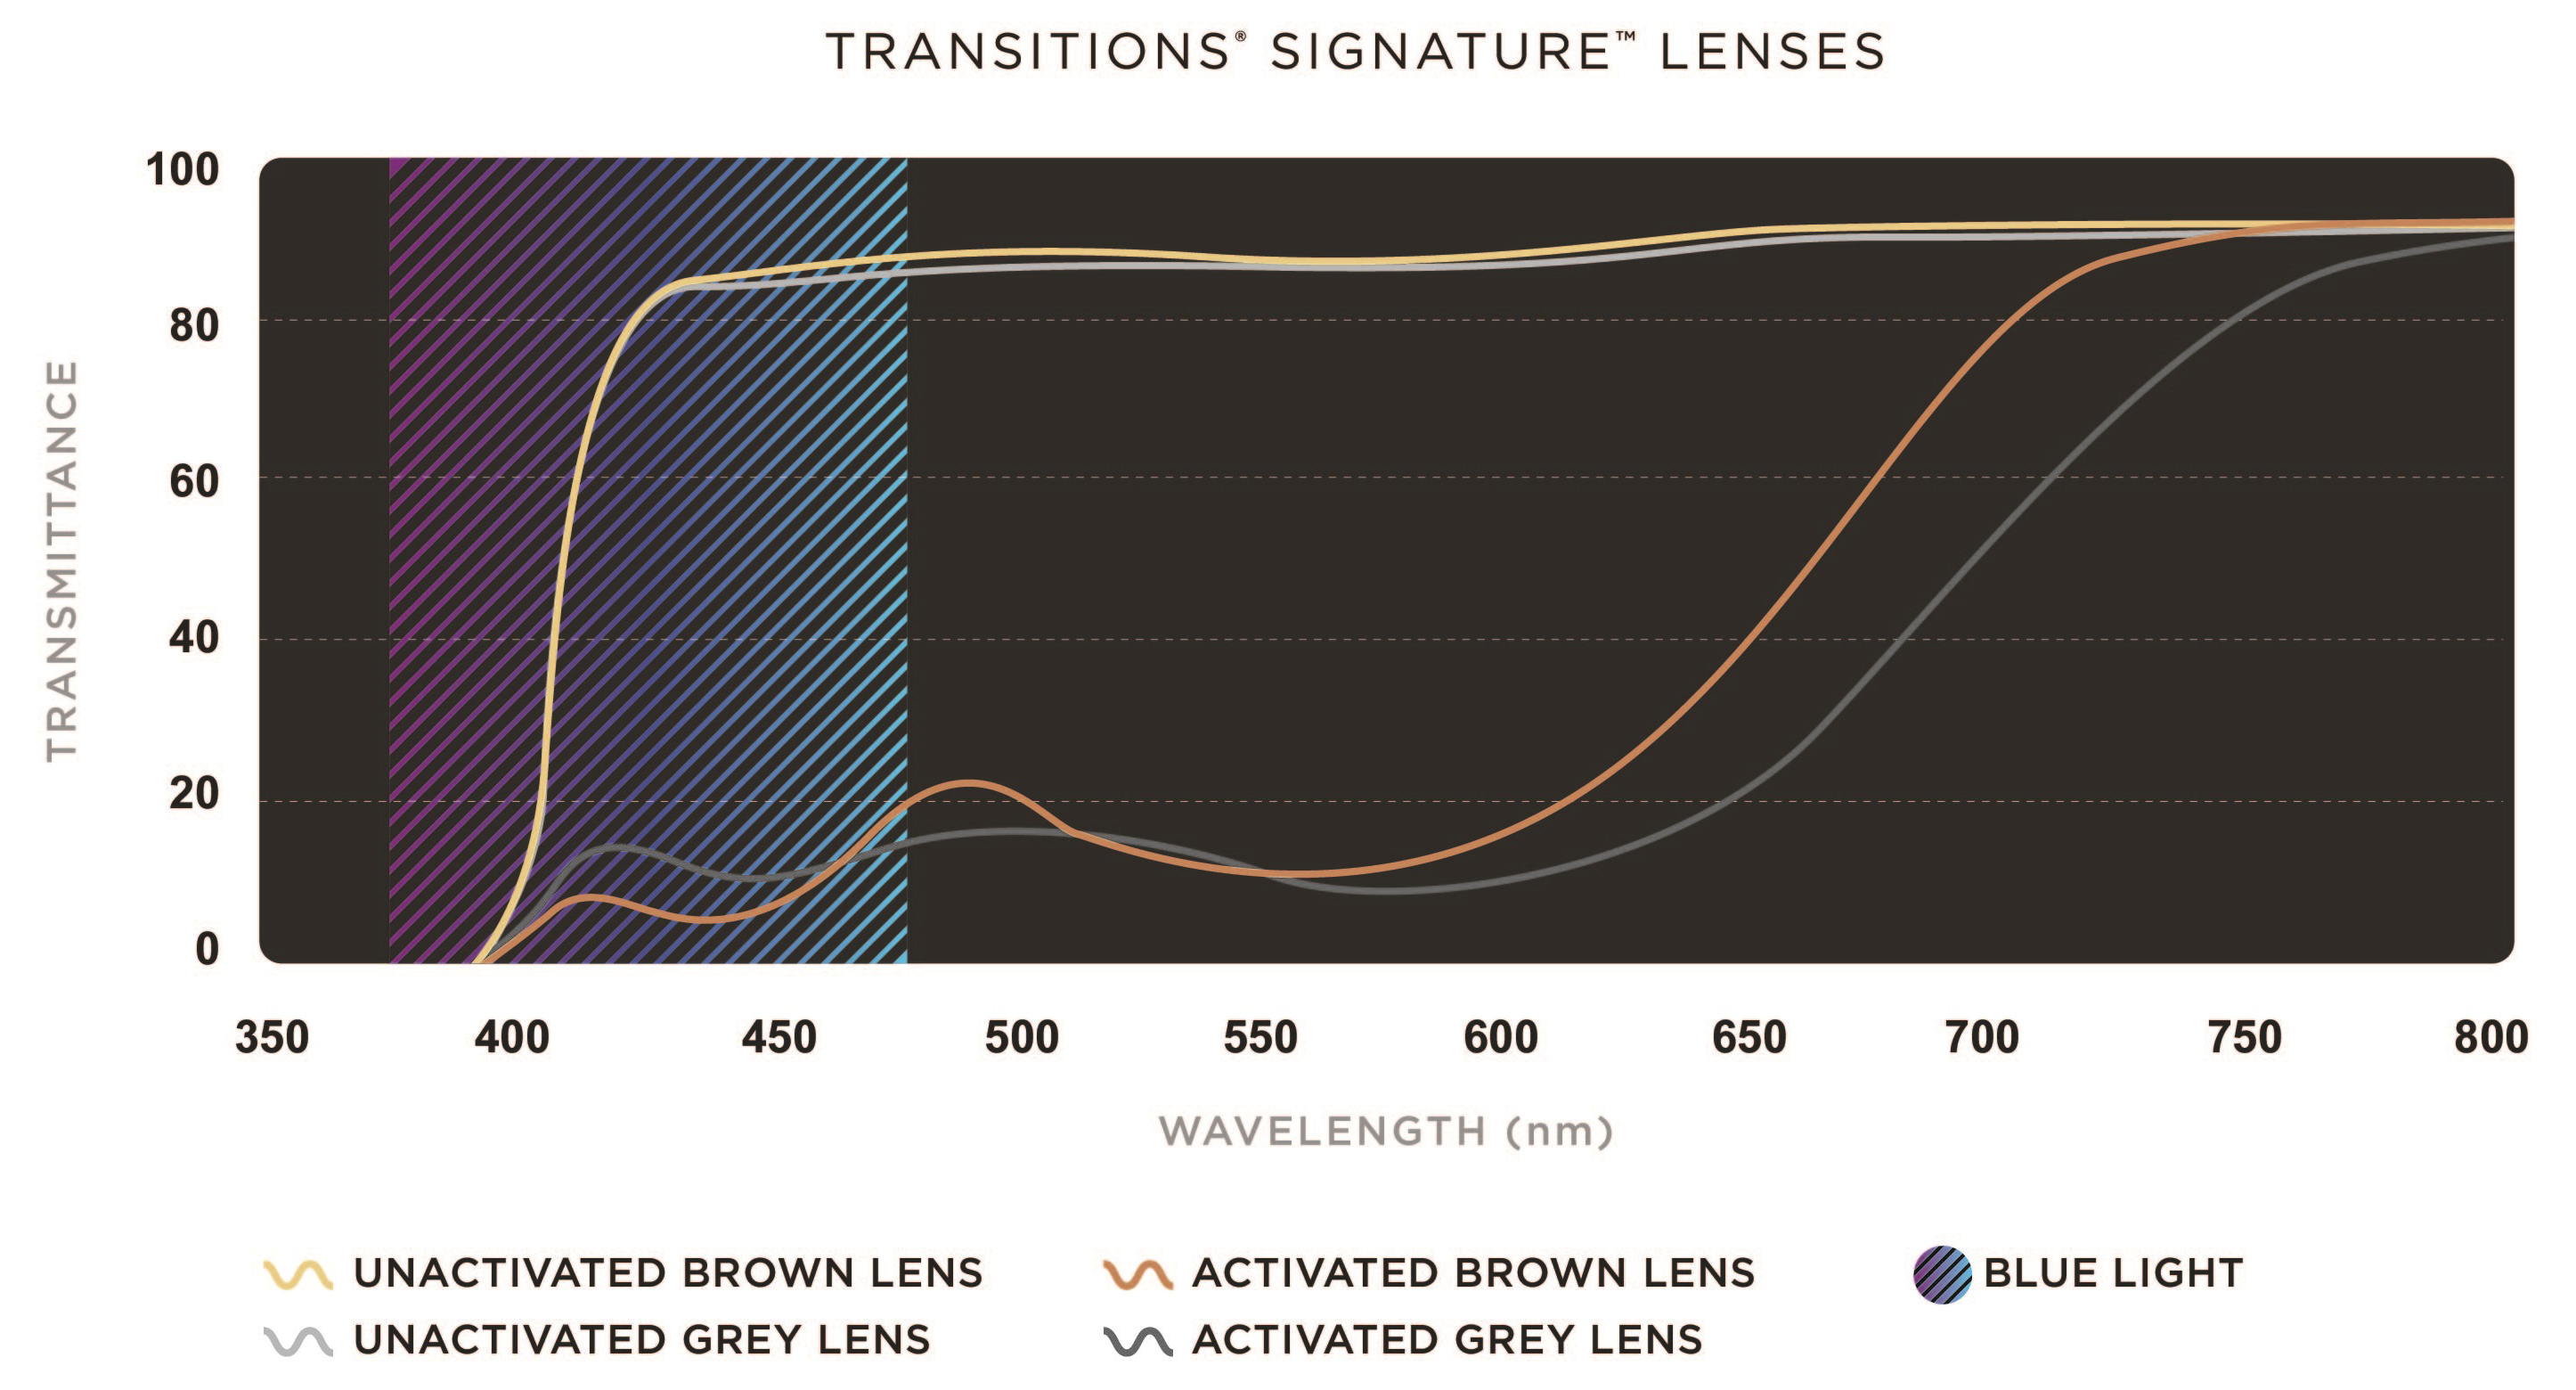 Overlay of un-activated and activated spectra of Transitions<sup>®</sup> Signature™ grey and brown lenses [A] and Transitions<sup>®</sup> XTRActive<sup>®</sup> grey and brown lenses [B]